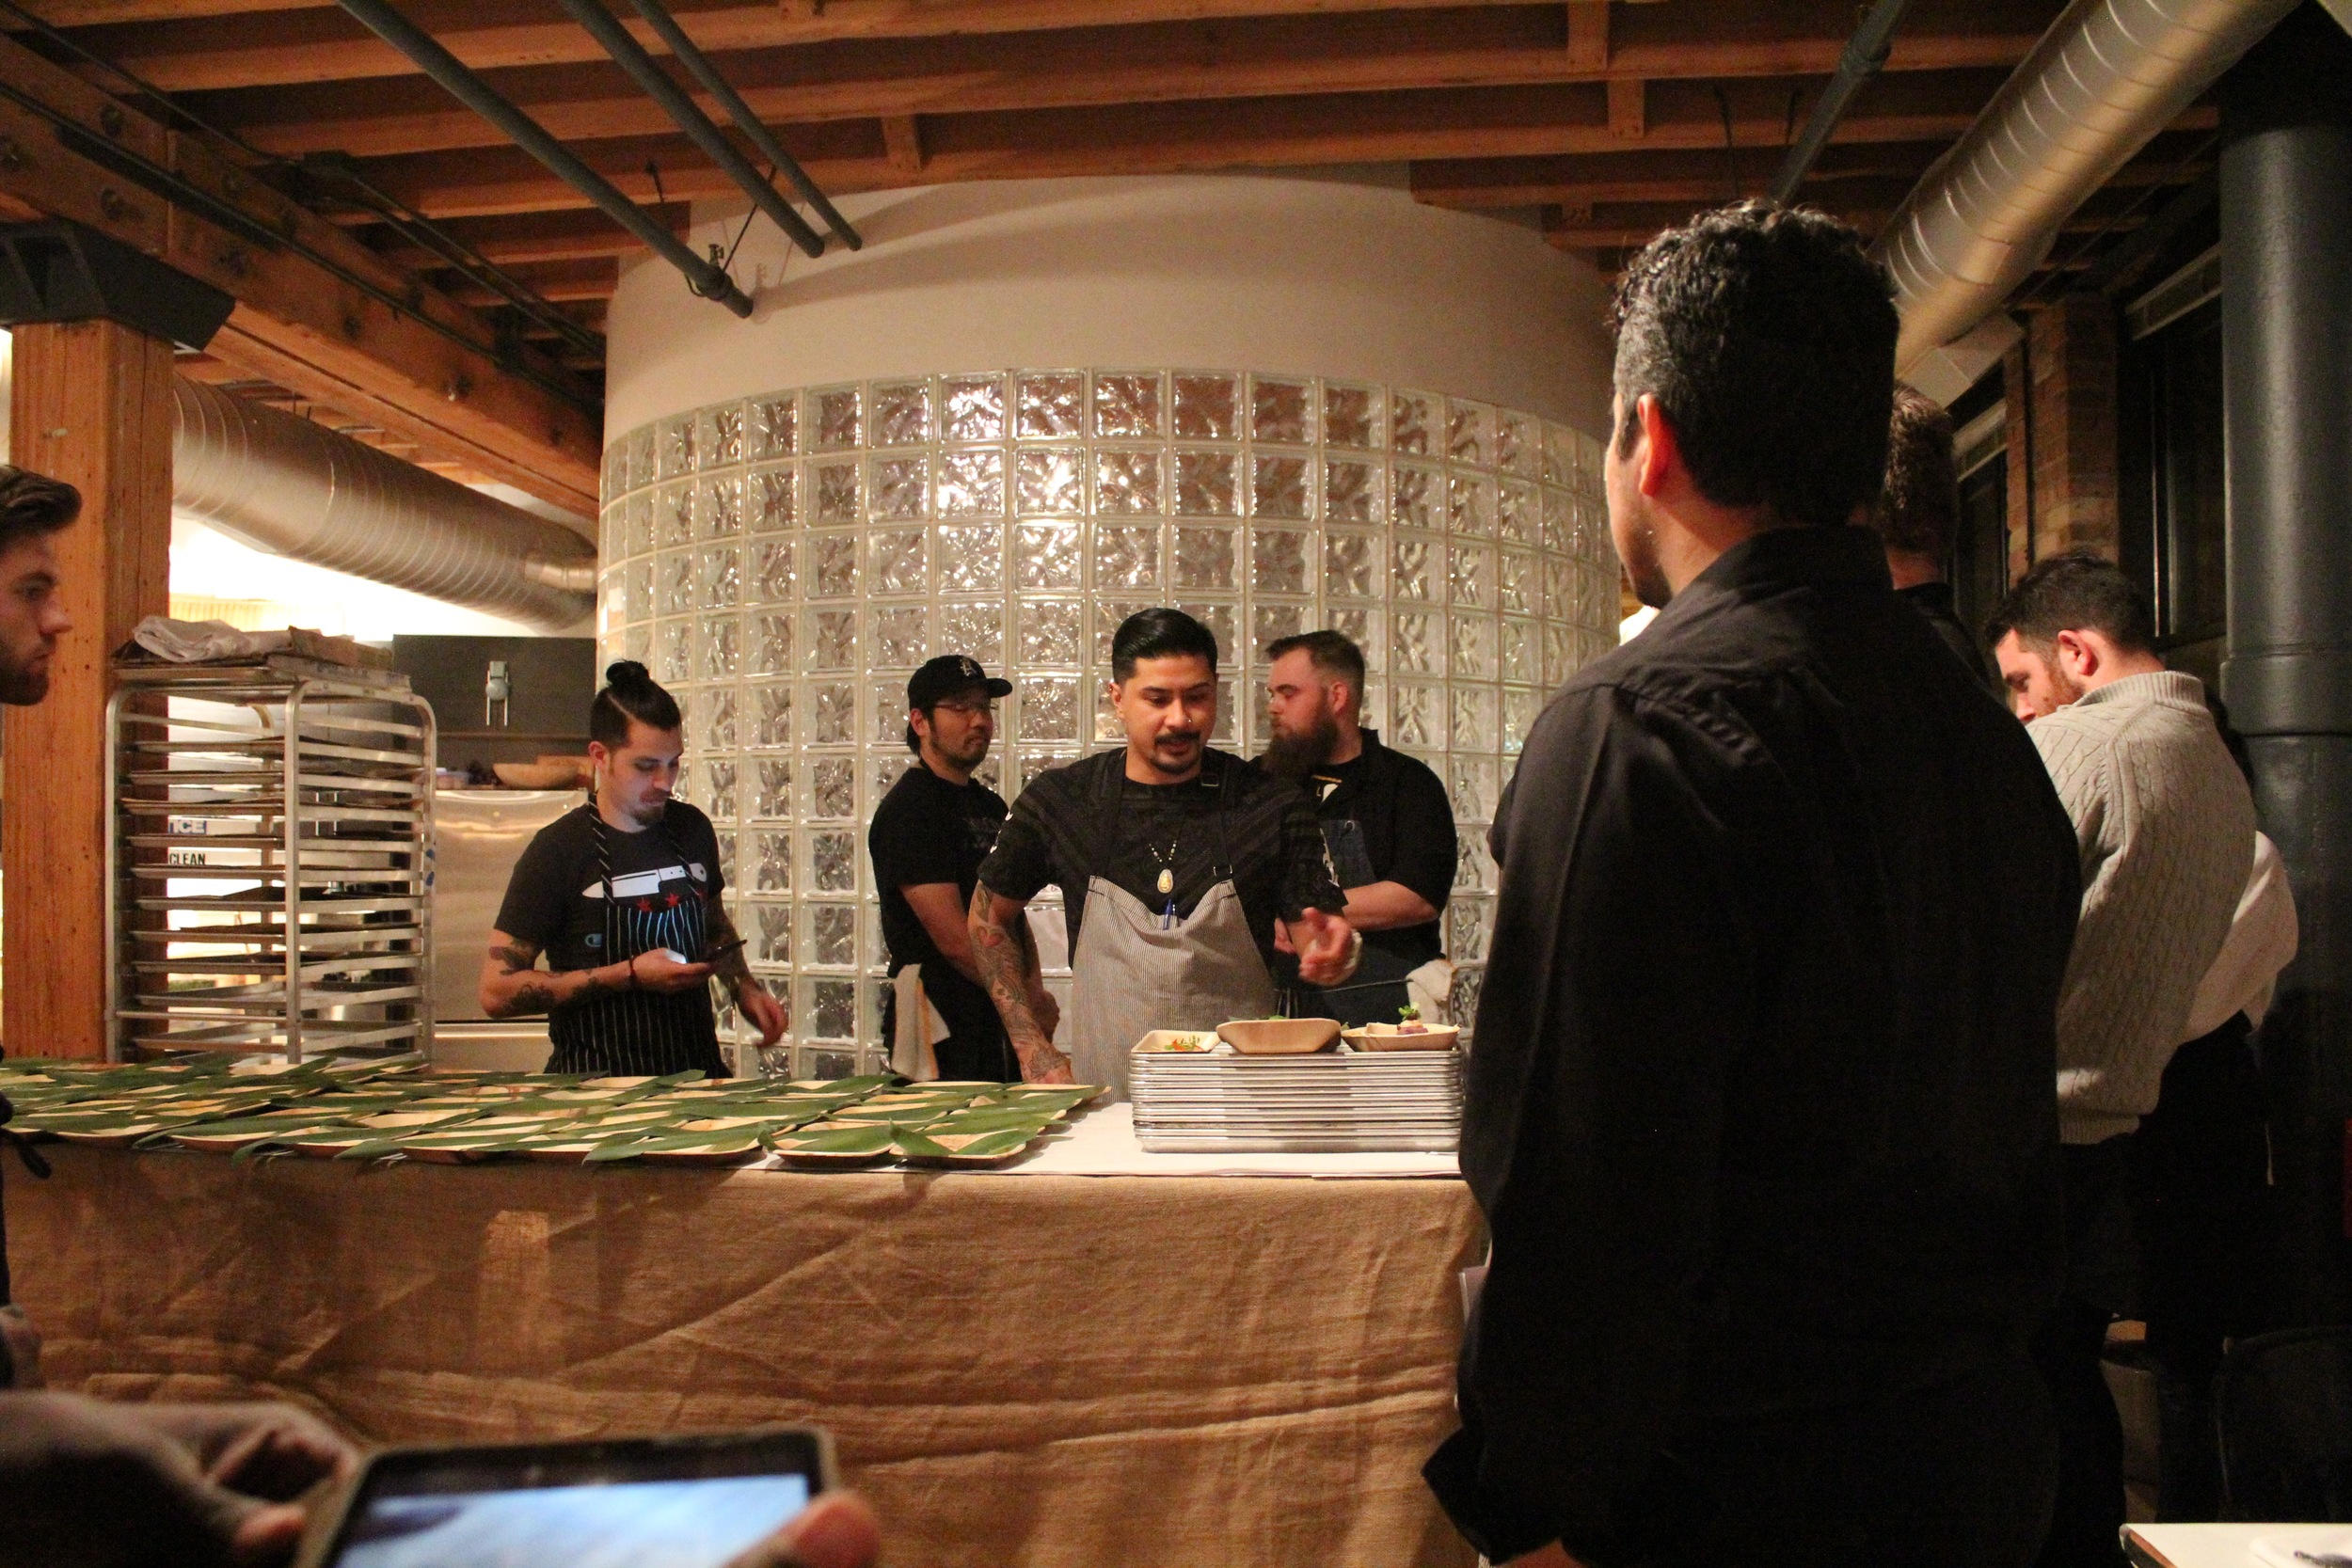 Chef Bryan prepares his cooks and servers for service with a run-through of the menu's finished plates.